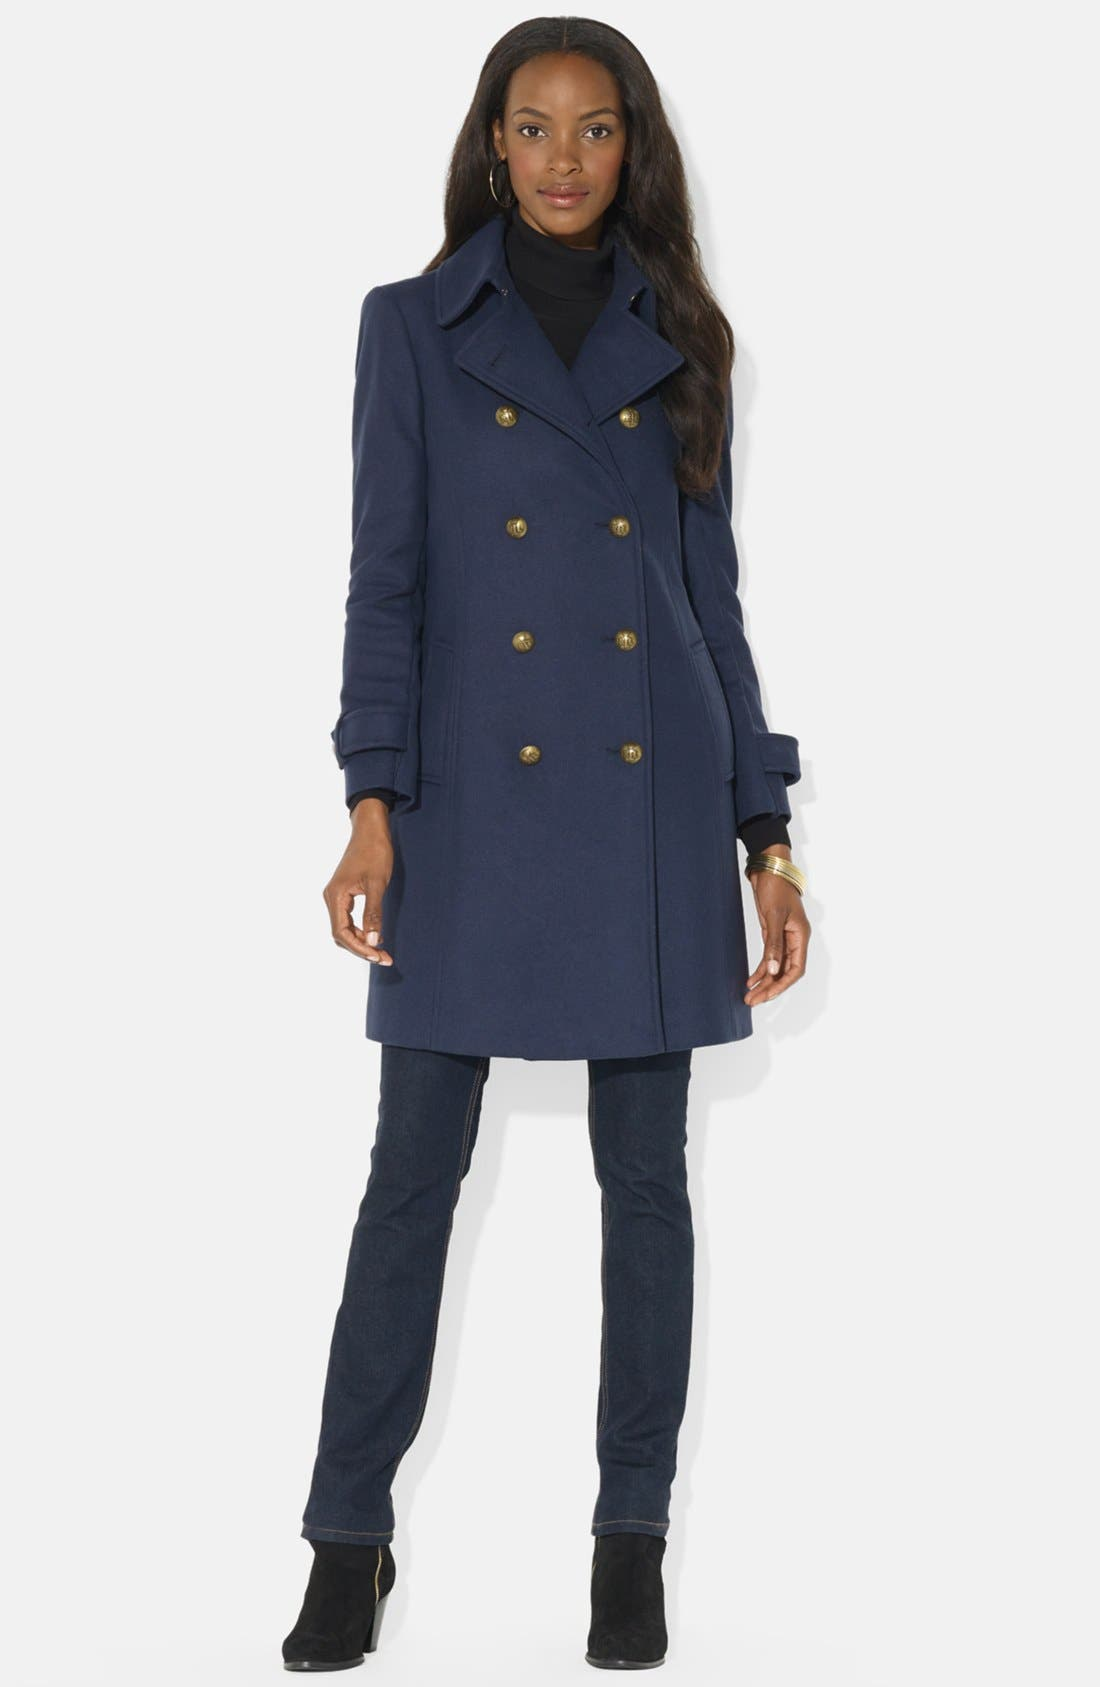 Alternate Image 1 Selected - Lauren Ralph Lauren Double Breasted Wool Blend Peacoat (Online Only)